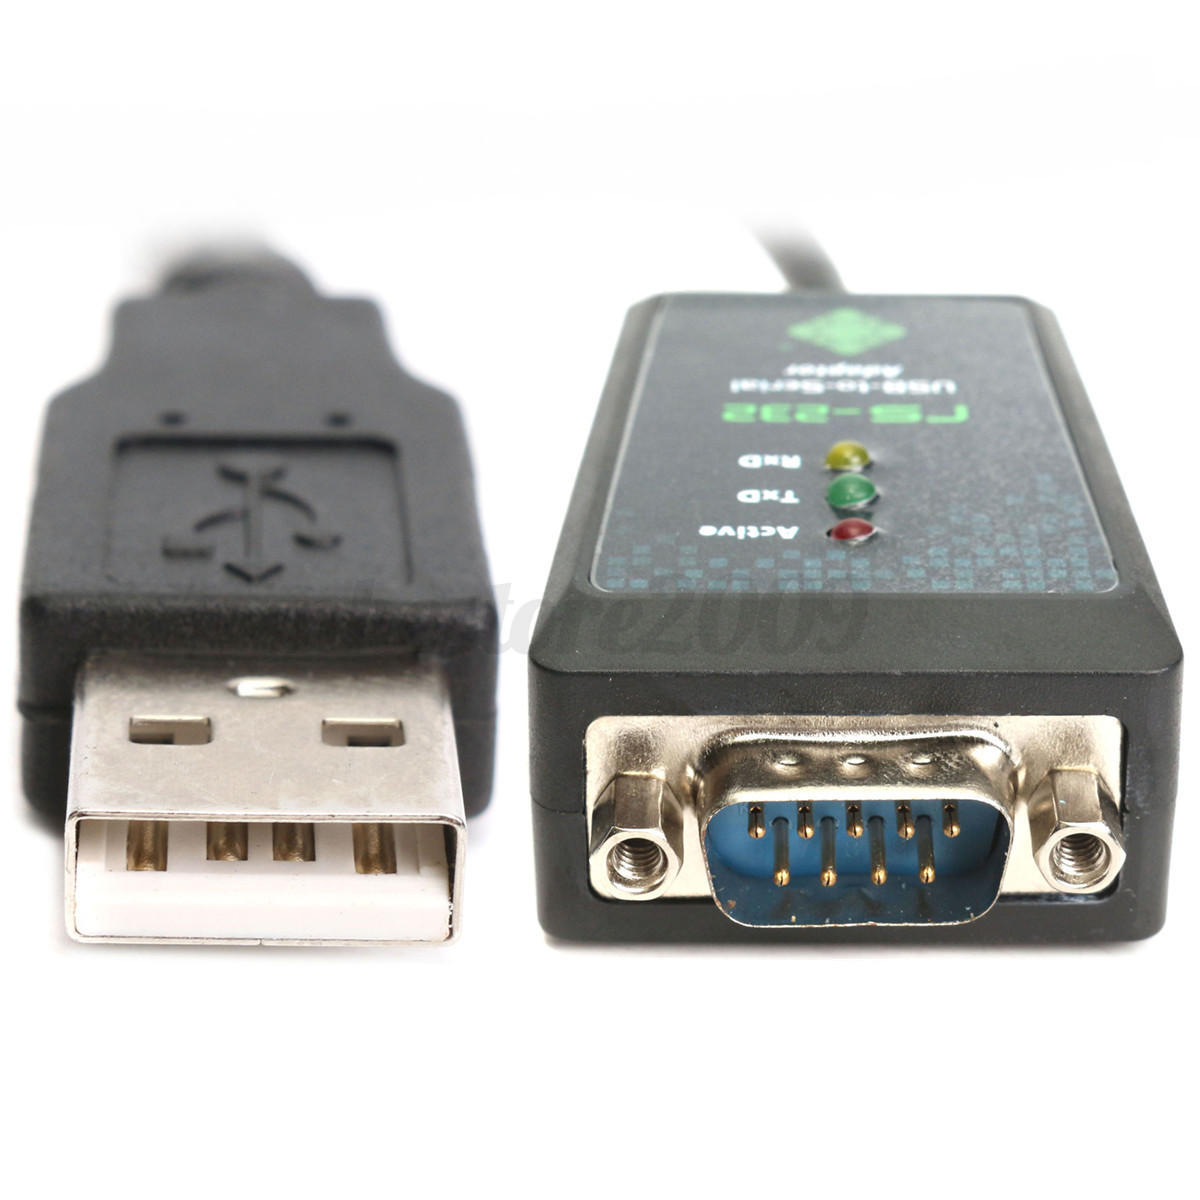 Iocrest usb to serial port converter cable wire rs232 db9 ftdi chipset 232a ebay - Usb serial port converter ...